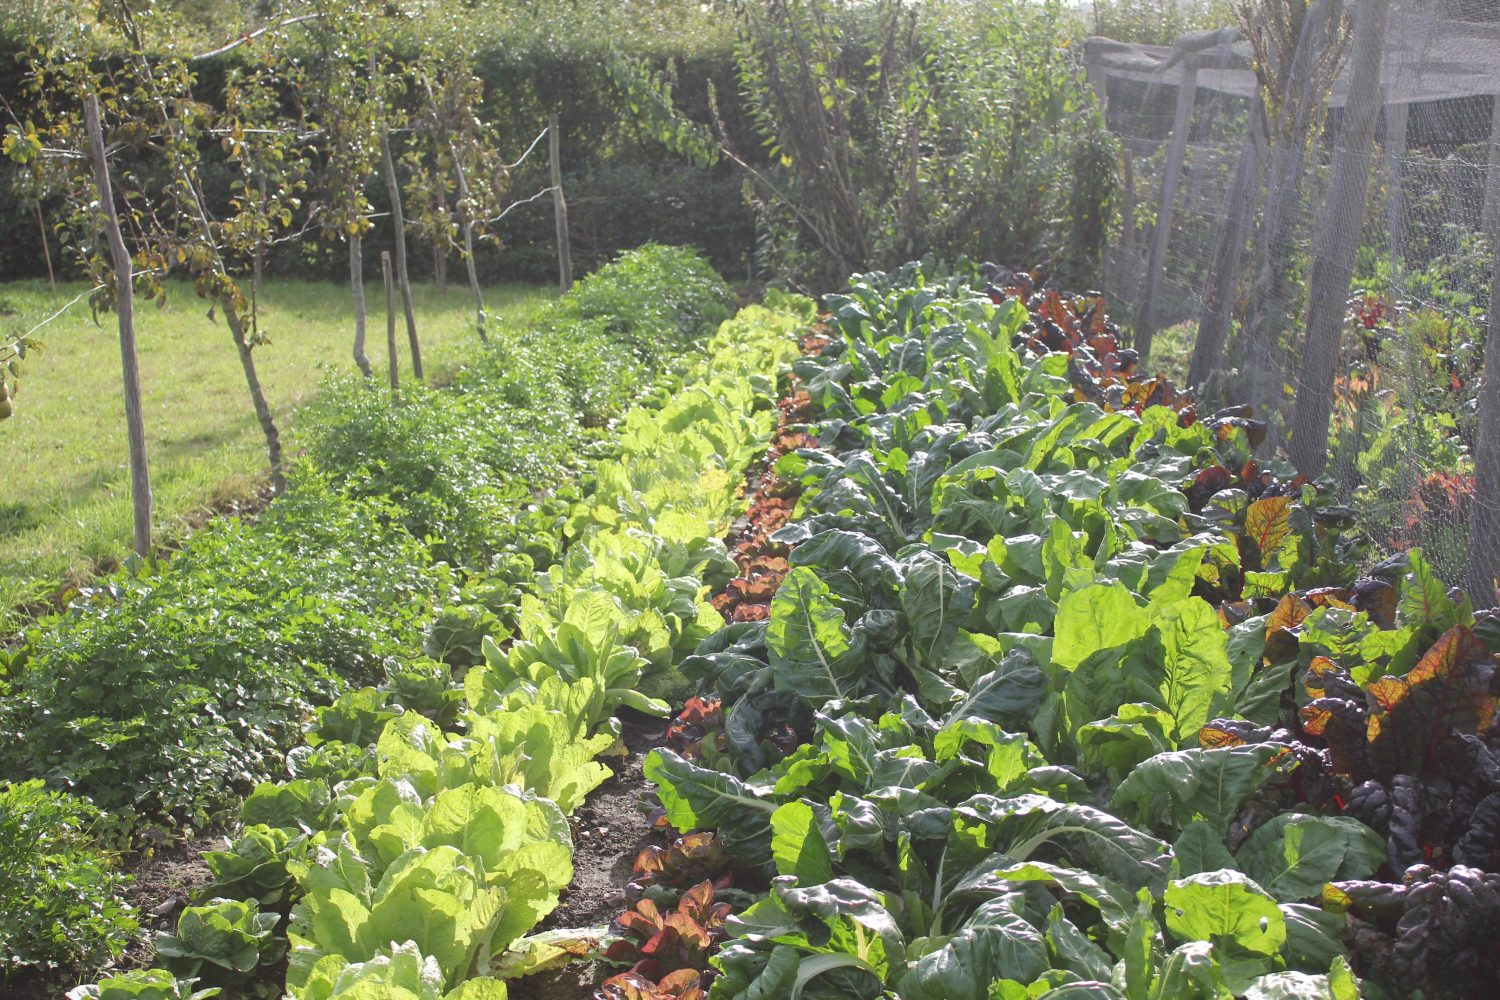 Vegetables grown in traditional rows